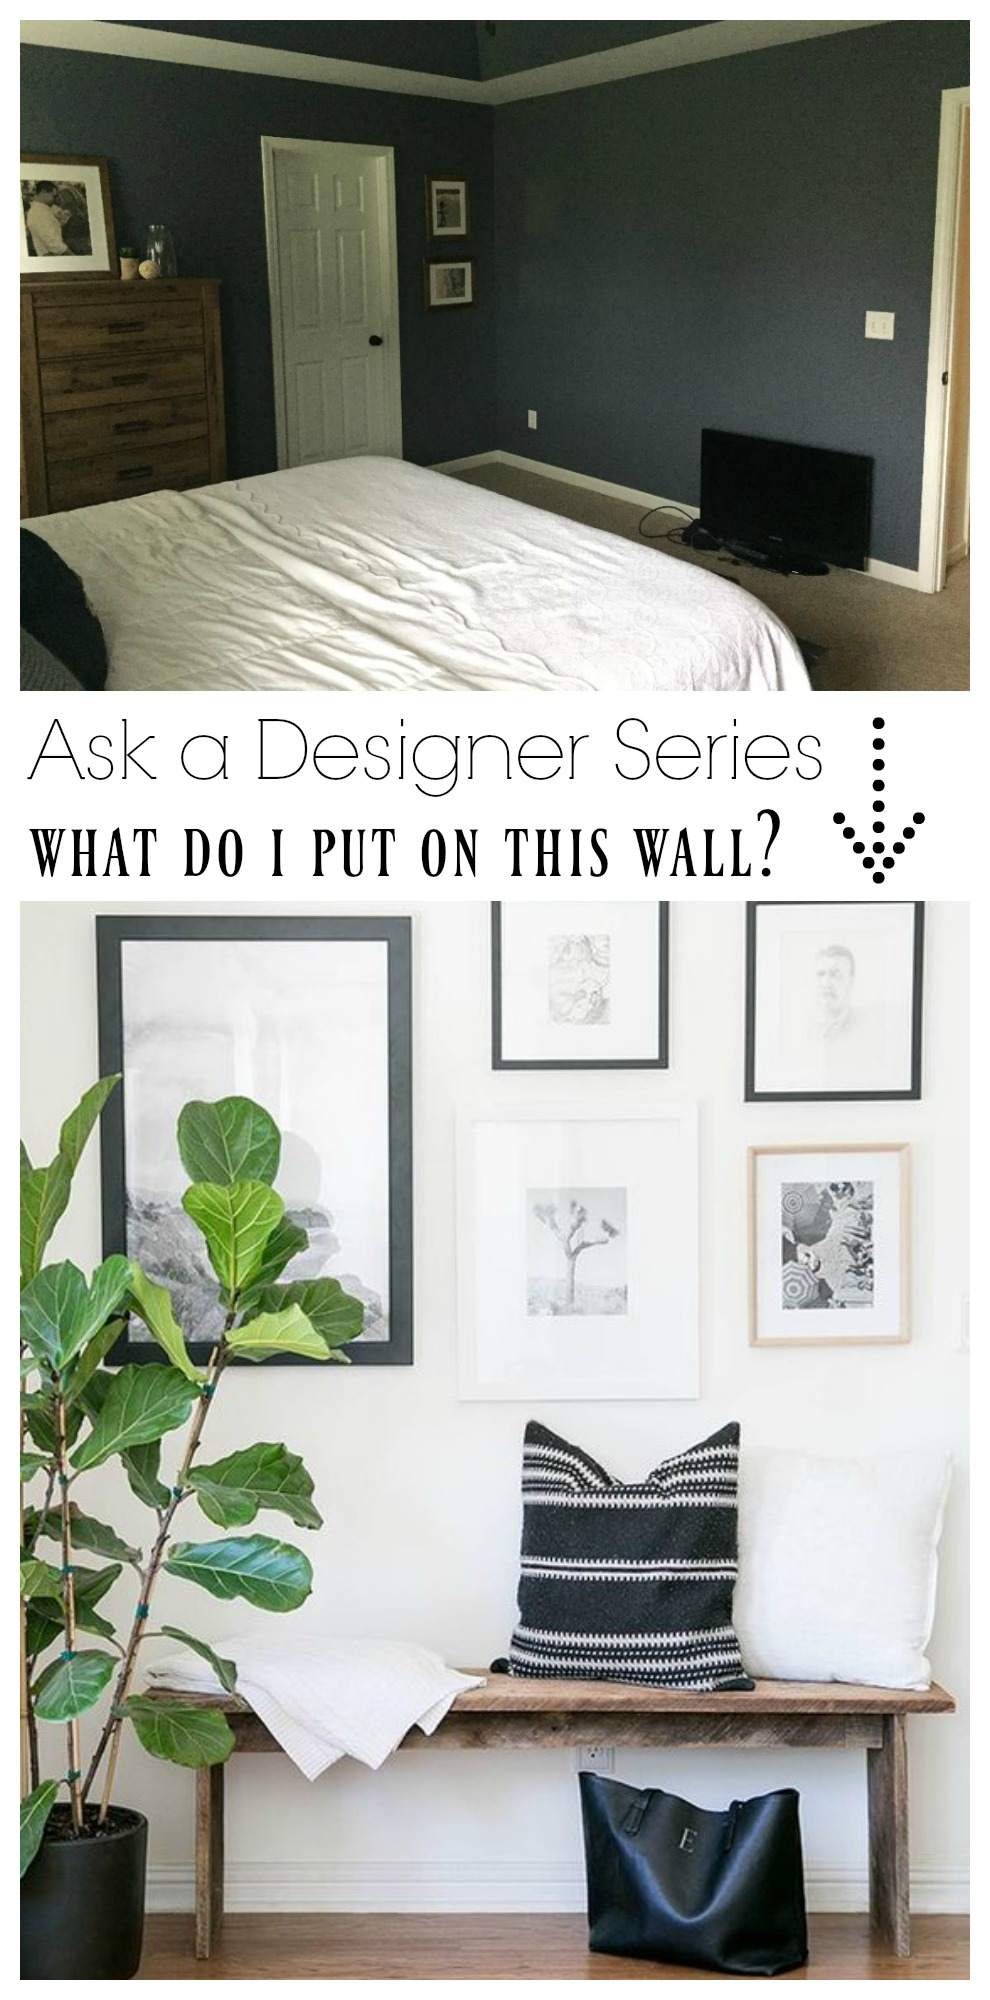 Ask a Designer Series- Bedroom Wall Ideas- Bench with Gallery Wall